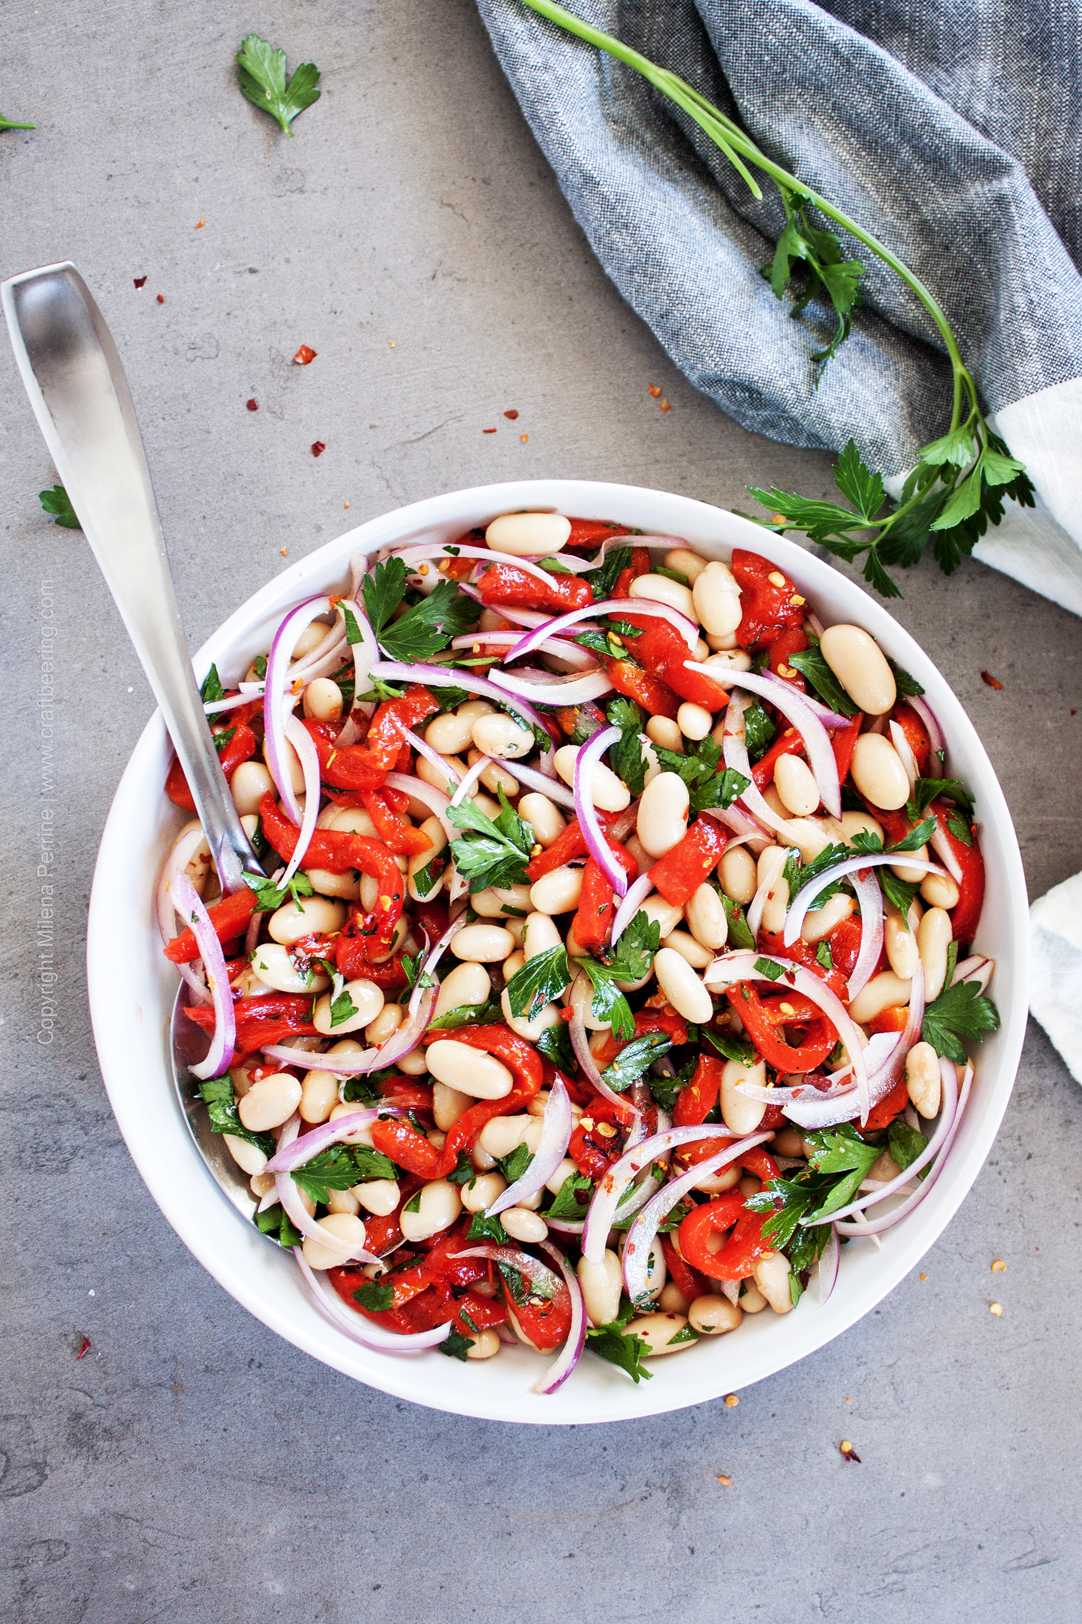 White bean salad with roasted red peppers.